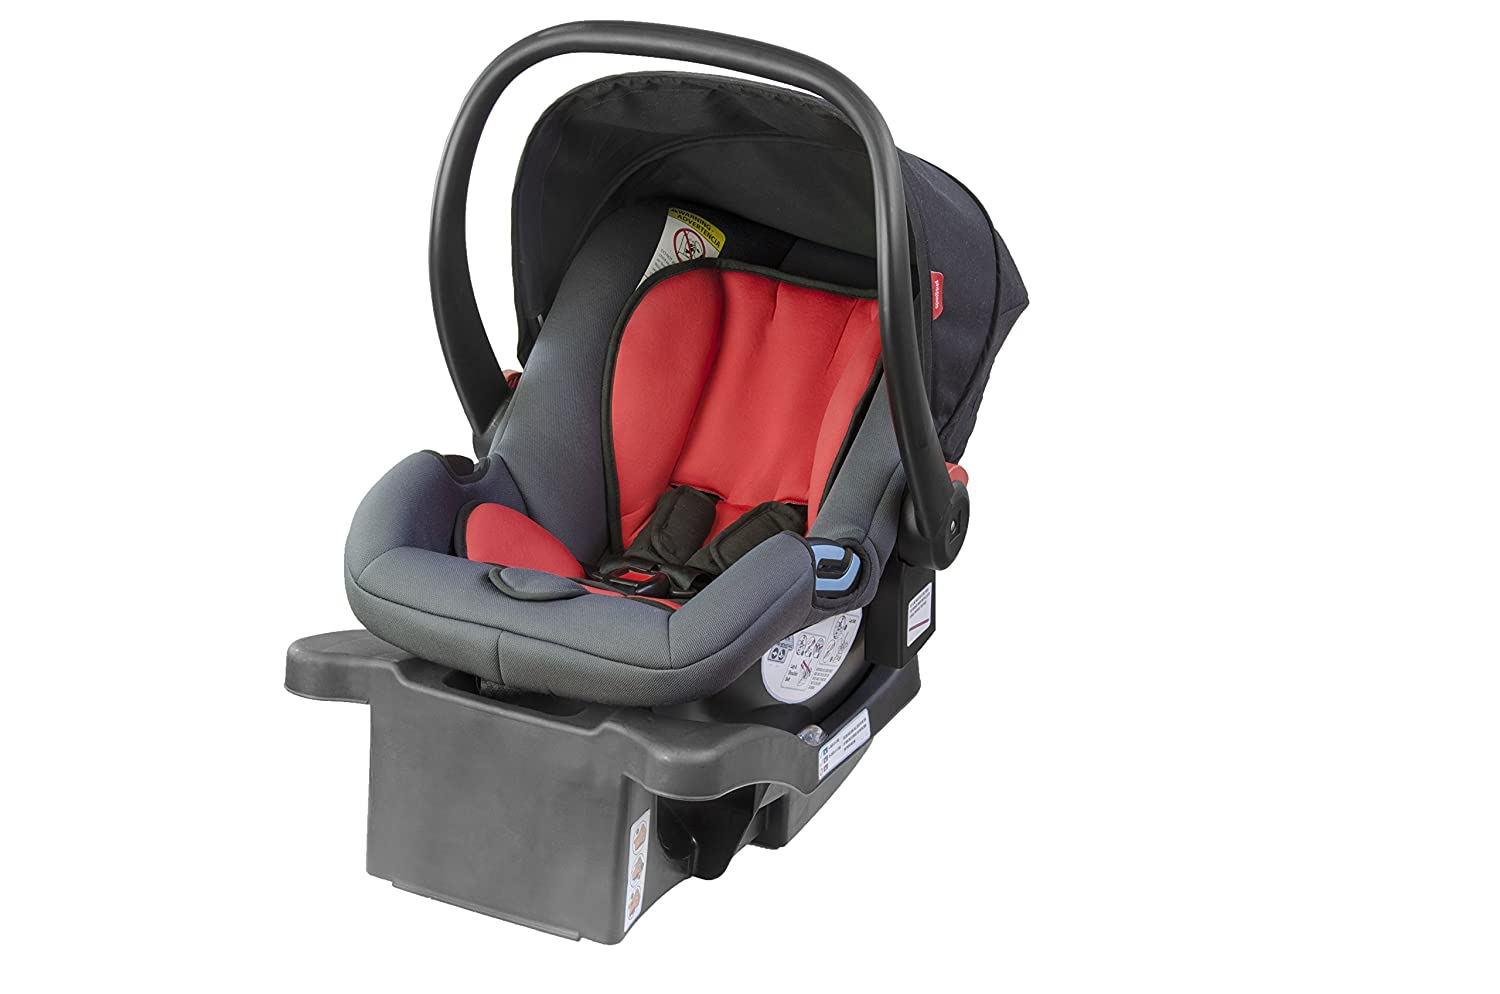 Amazon.com : phil&teds Alpha Infant Car Seat, Flint/Red : Baby